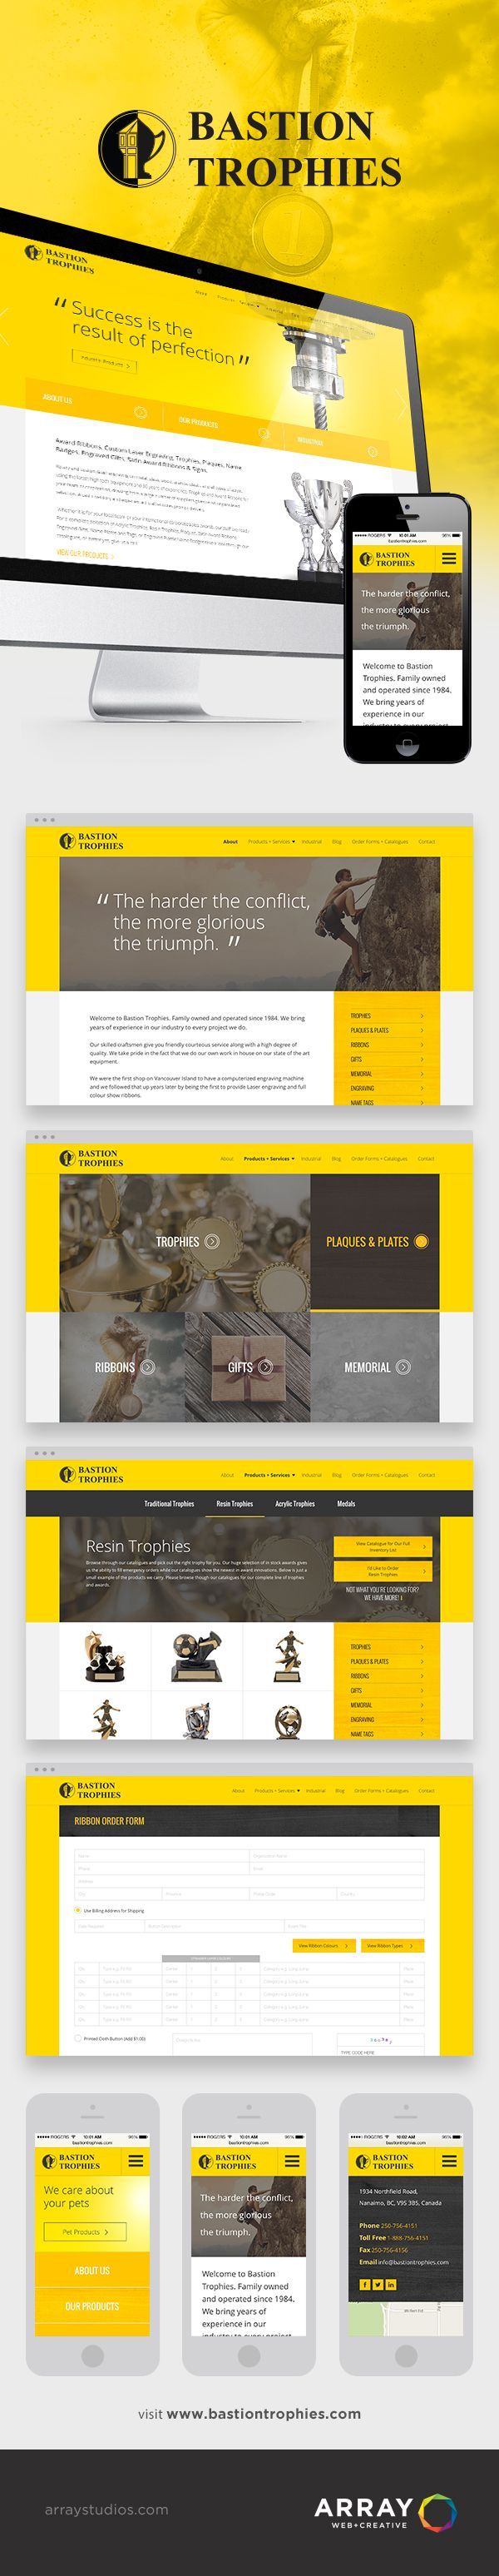 WEBSITE LAUNCH - Bastion Trophies - Array Web + Creative, Nanaimo - Awards Website, Trophy Website, #yellow, #yellowdesign